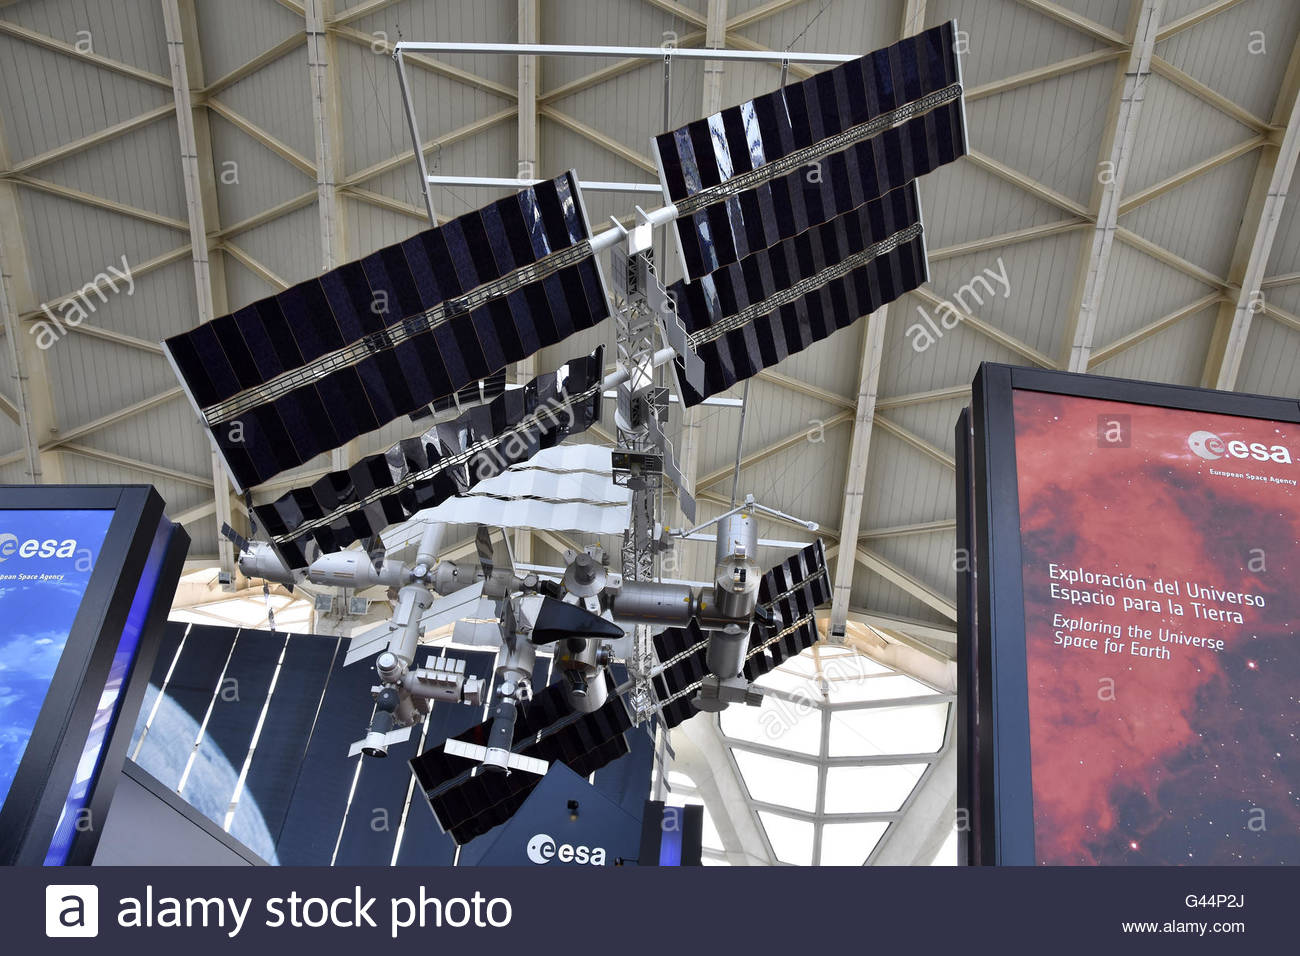 Model of  European Space Agency's (ESA) International Space Station (ISS) displayed at Science Museum in Valencia - Stock Image